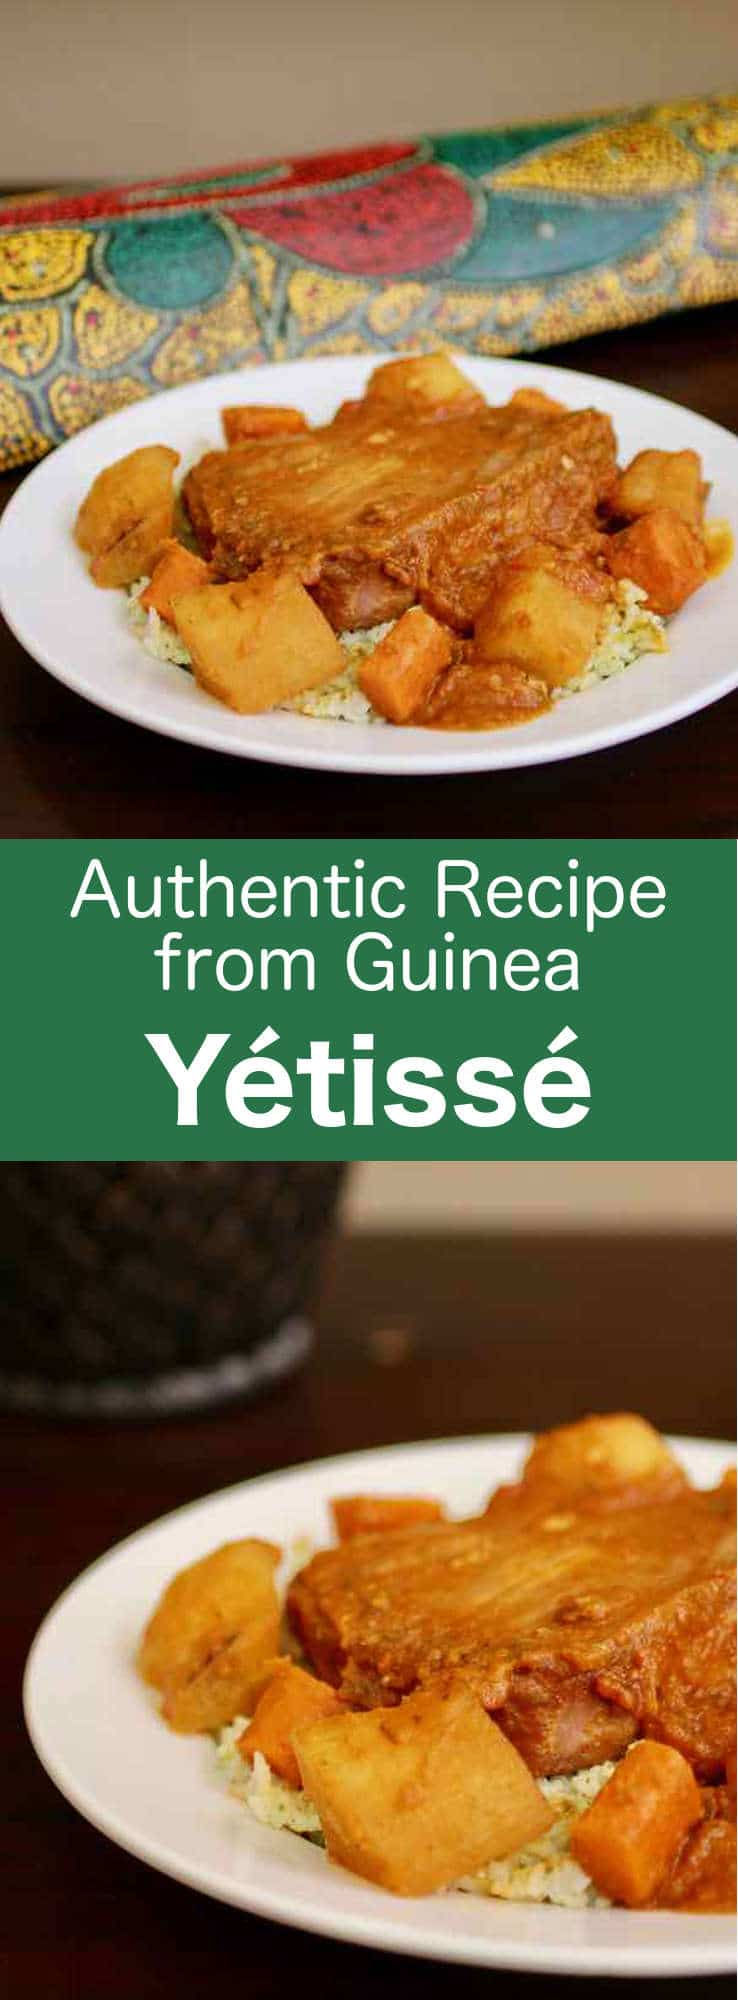 Yétissé is a delicious traditional stew from Guinea that is usually prepared with fish and served with rice combined with mashed okra. #Guinea #196flavors